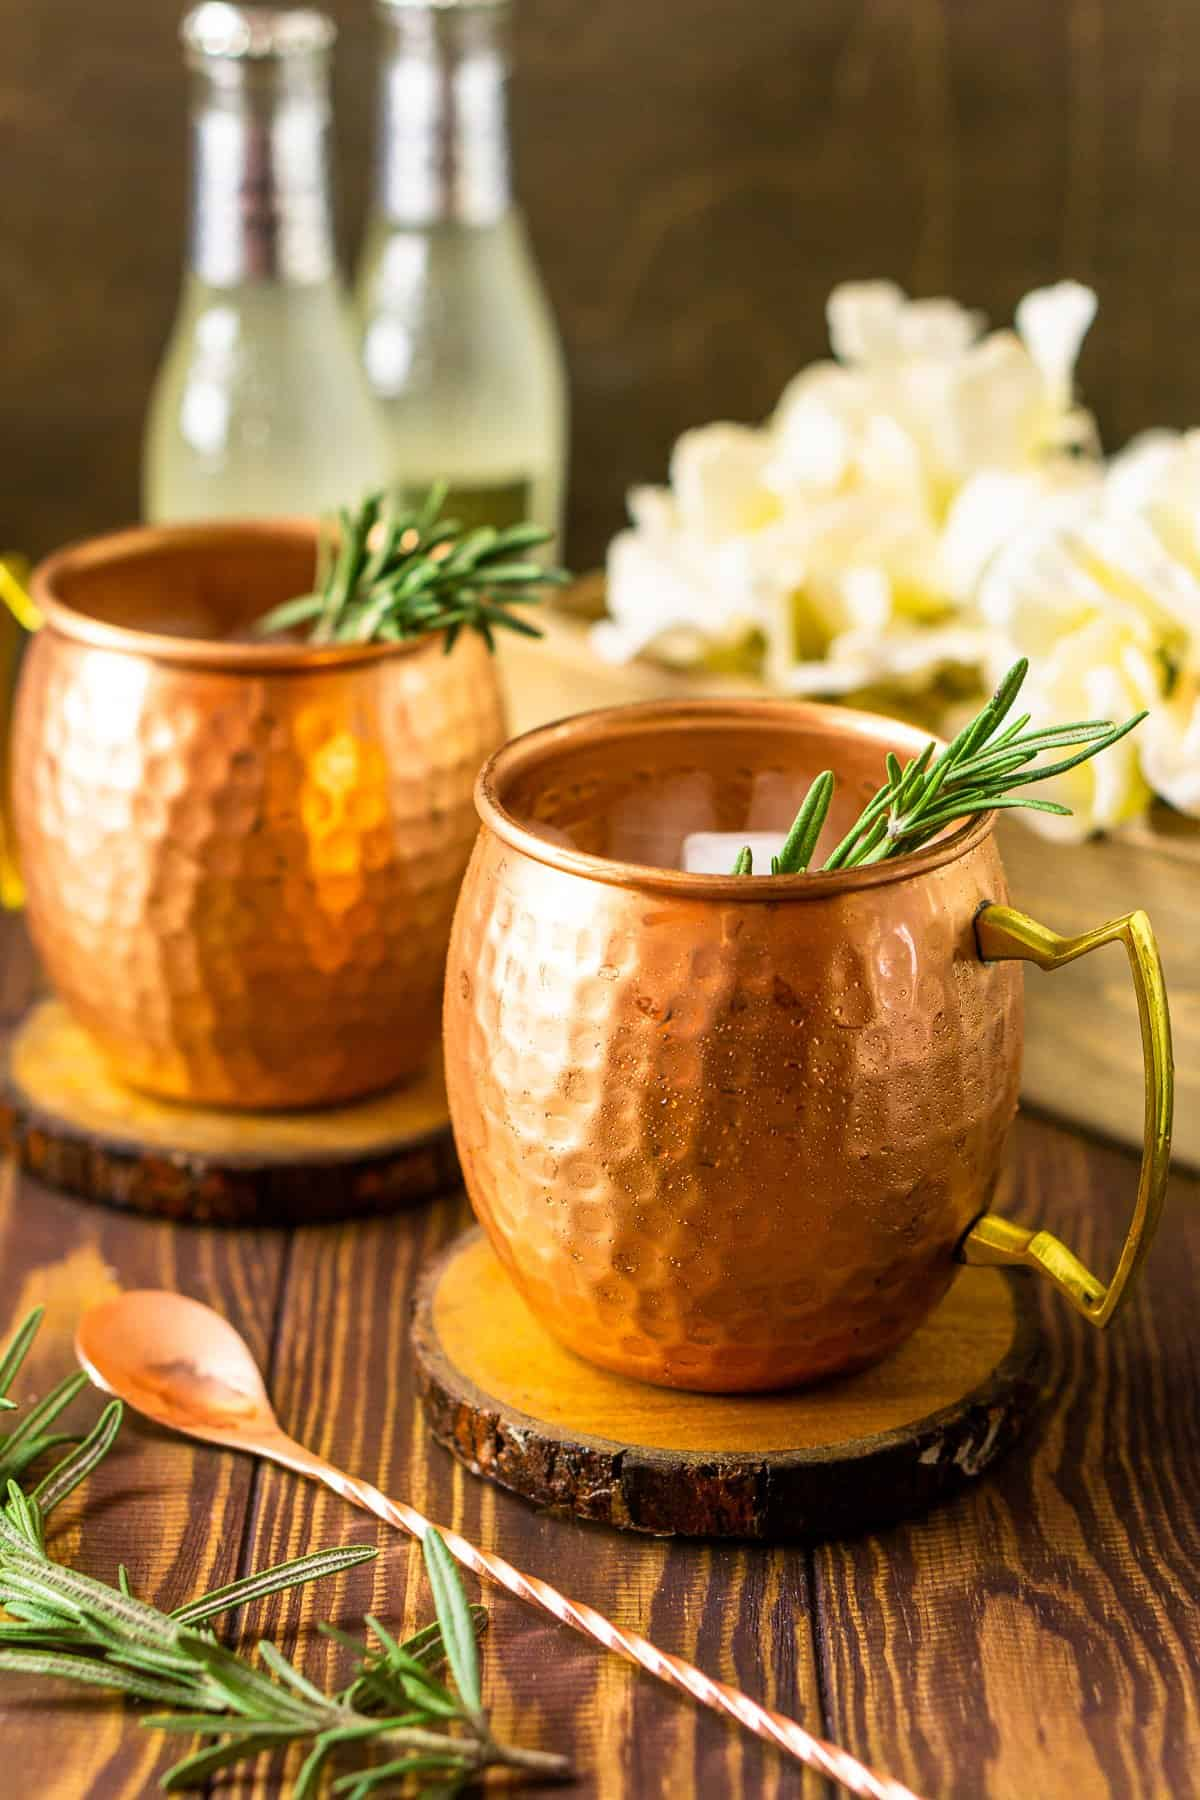 Two rosemary Kentucky mule with ginger beers in the background on a wooden board.